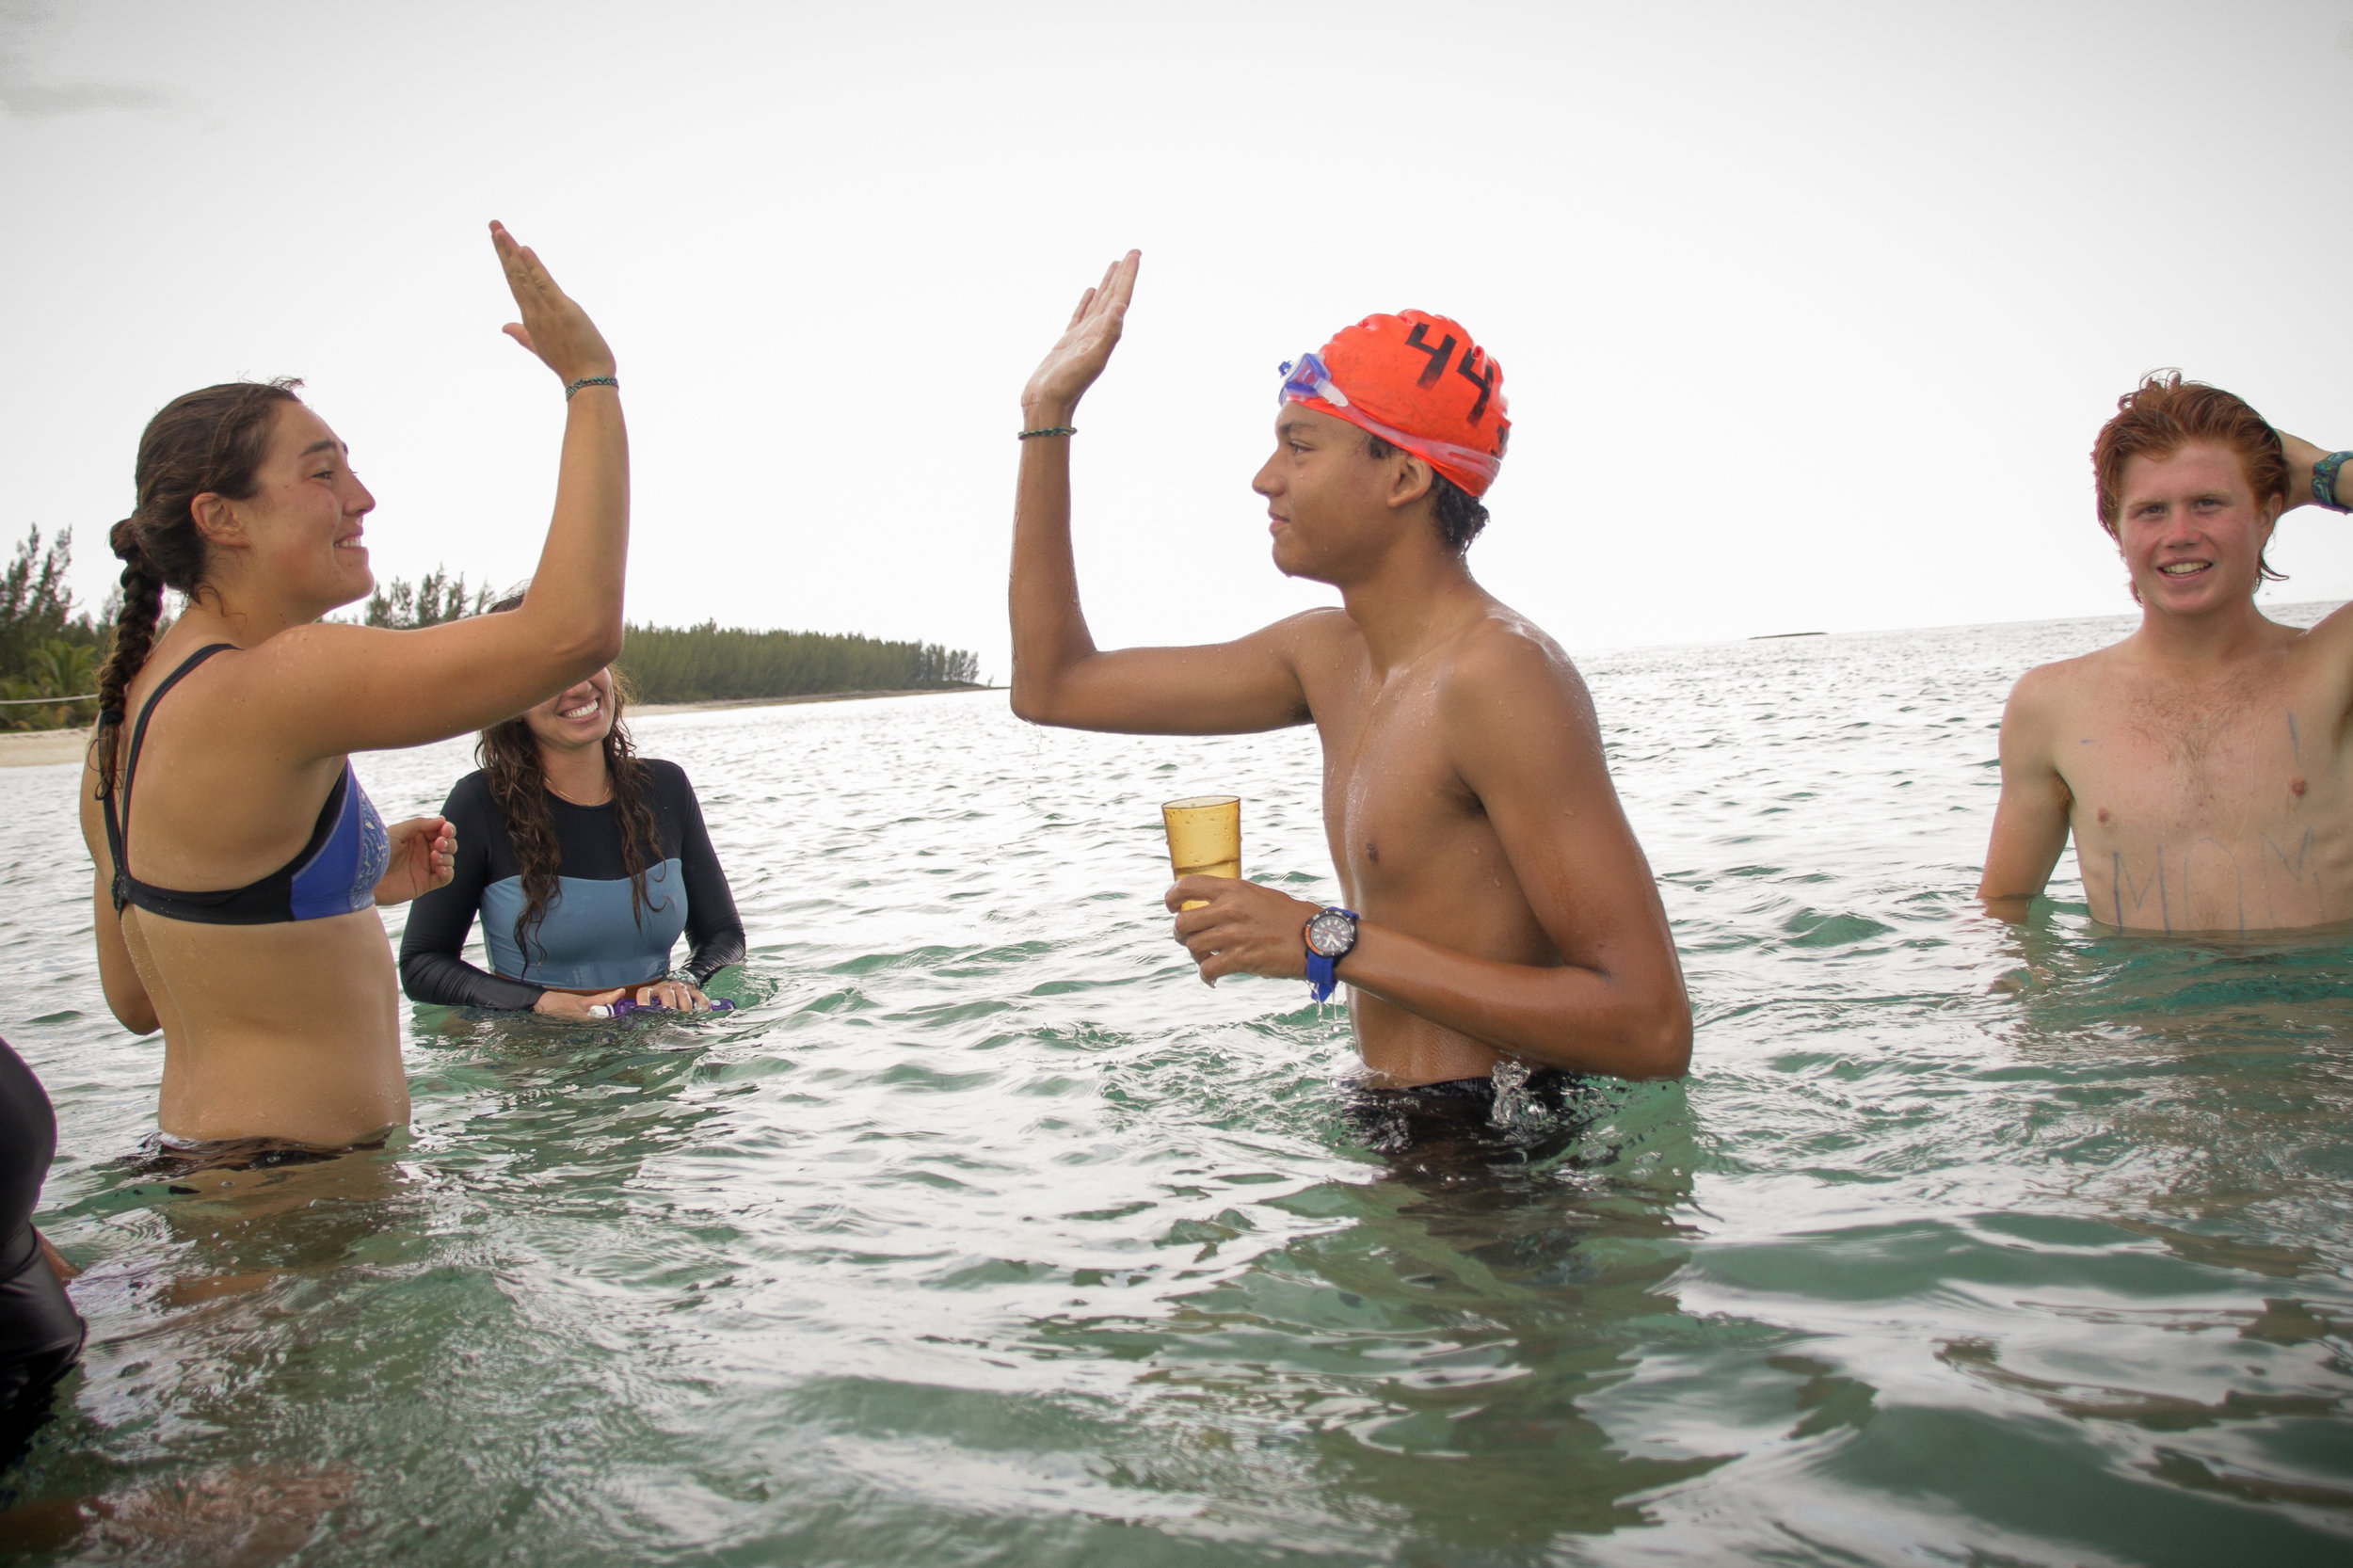 Donavan Hepburn, student, celebrating with Lizzy, his Histories teacher, both of whom completed the four mile Super Swim.